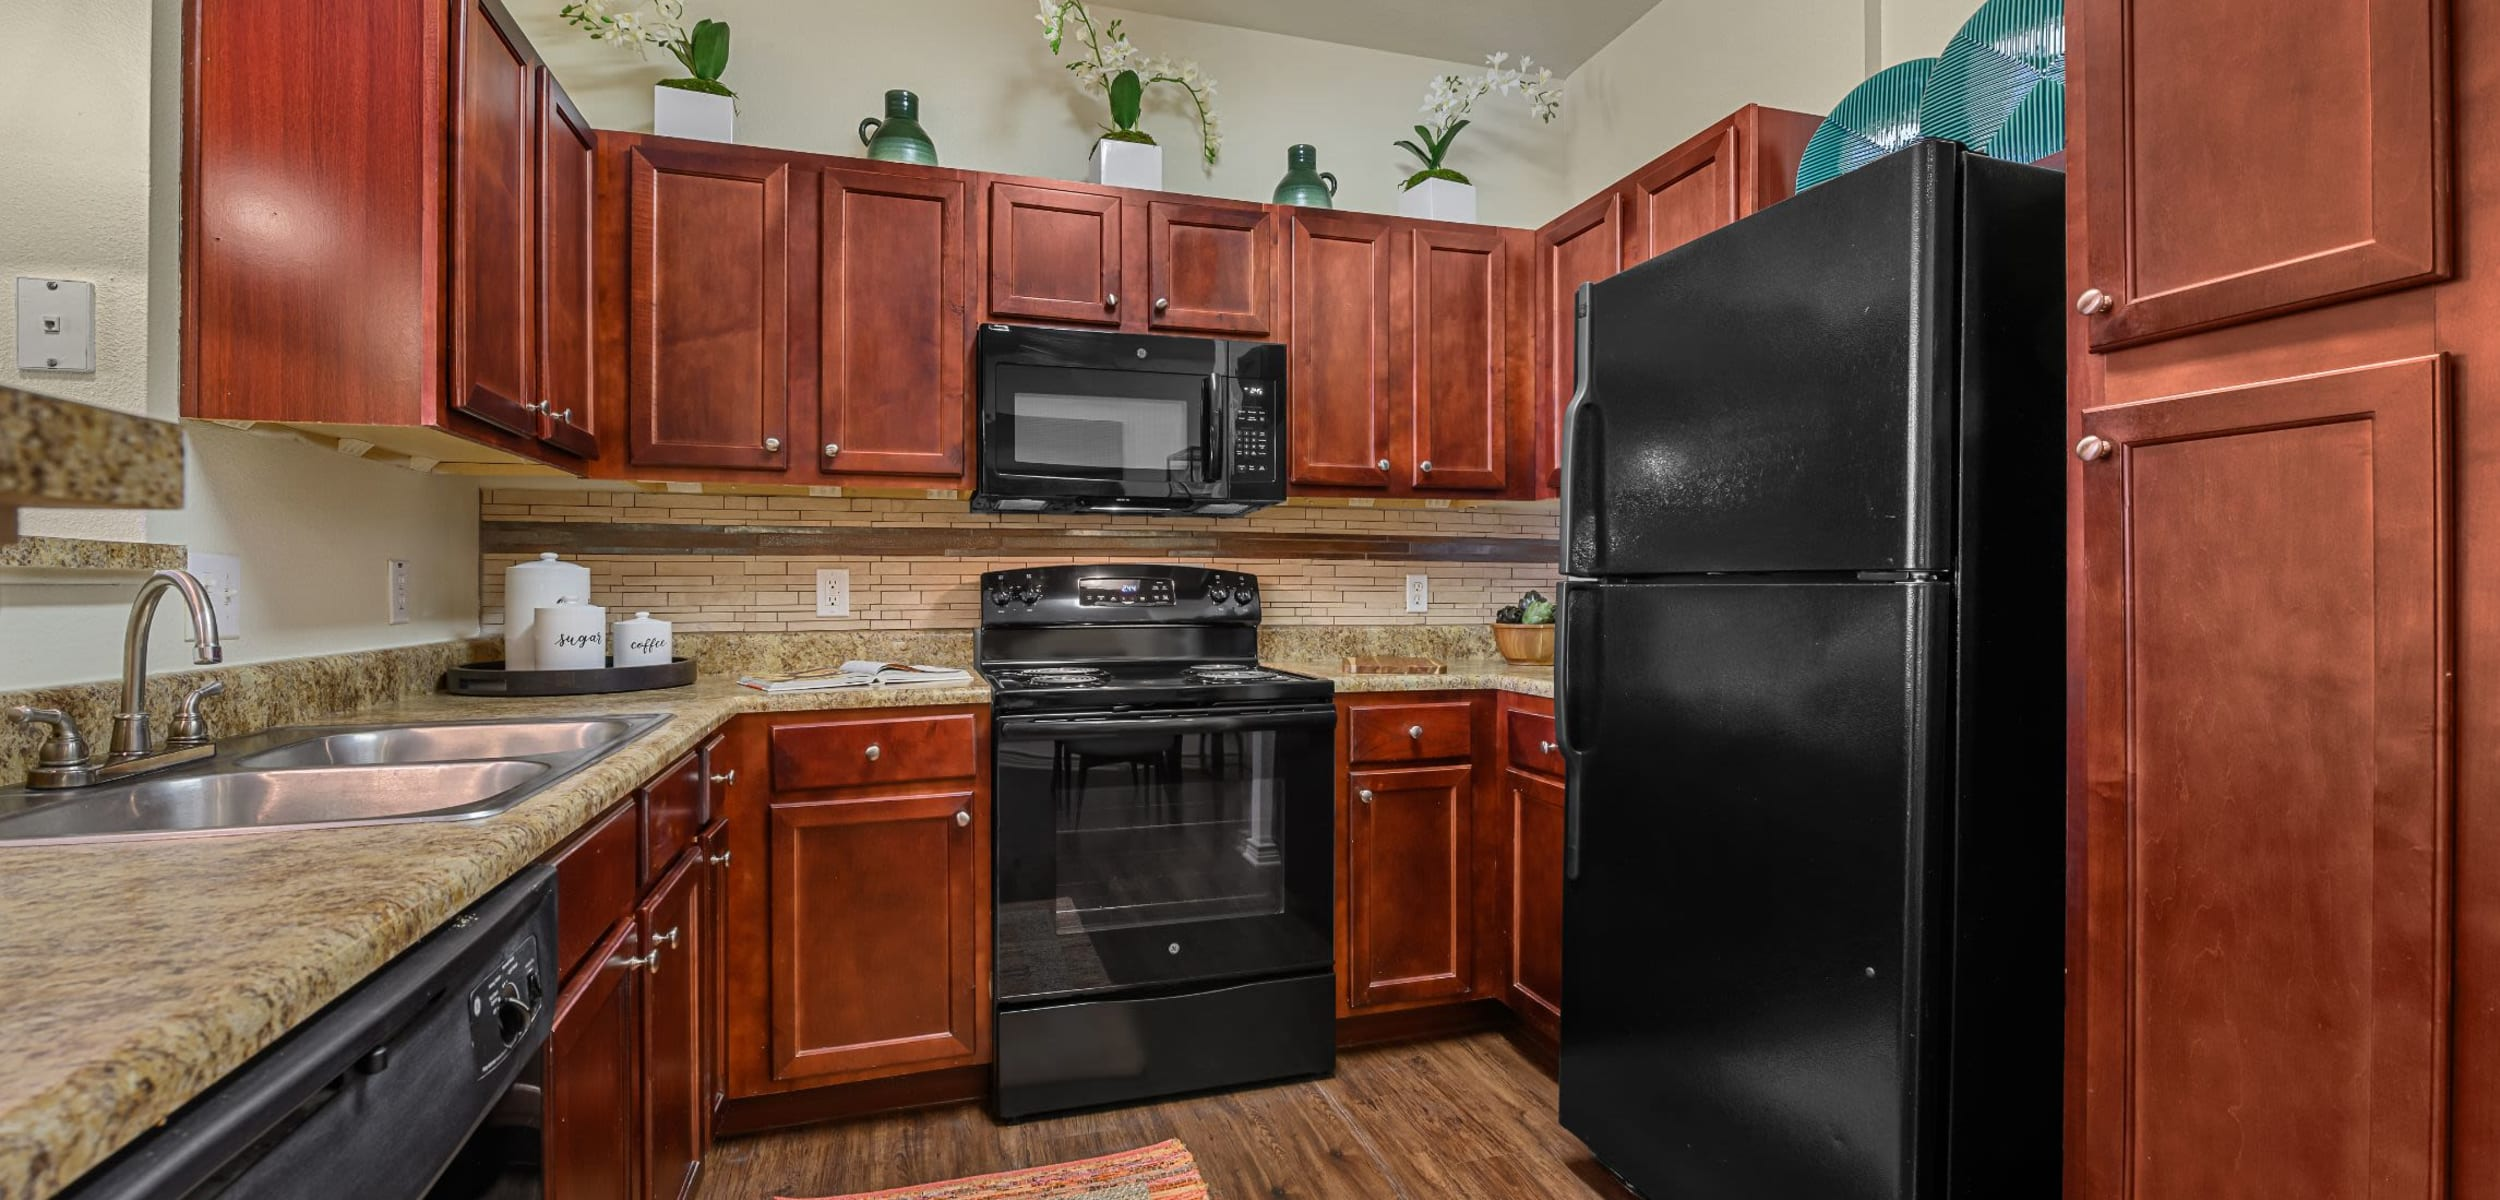 Modern kitchen with black appliances at Marquis Lakeline Station in Austin, Texas